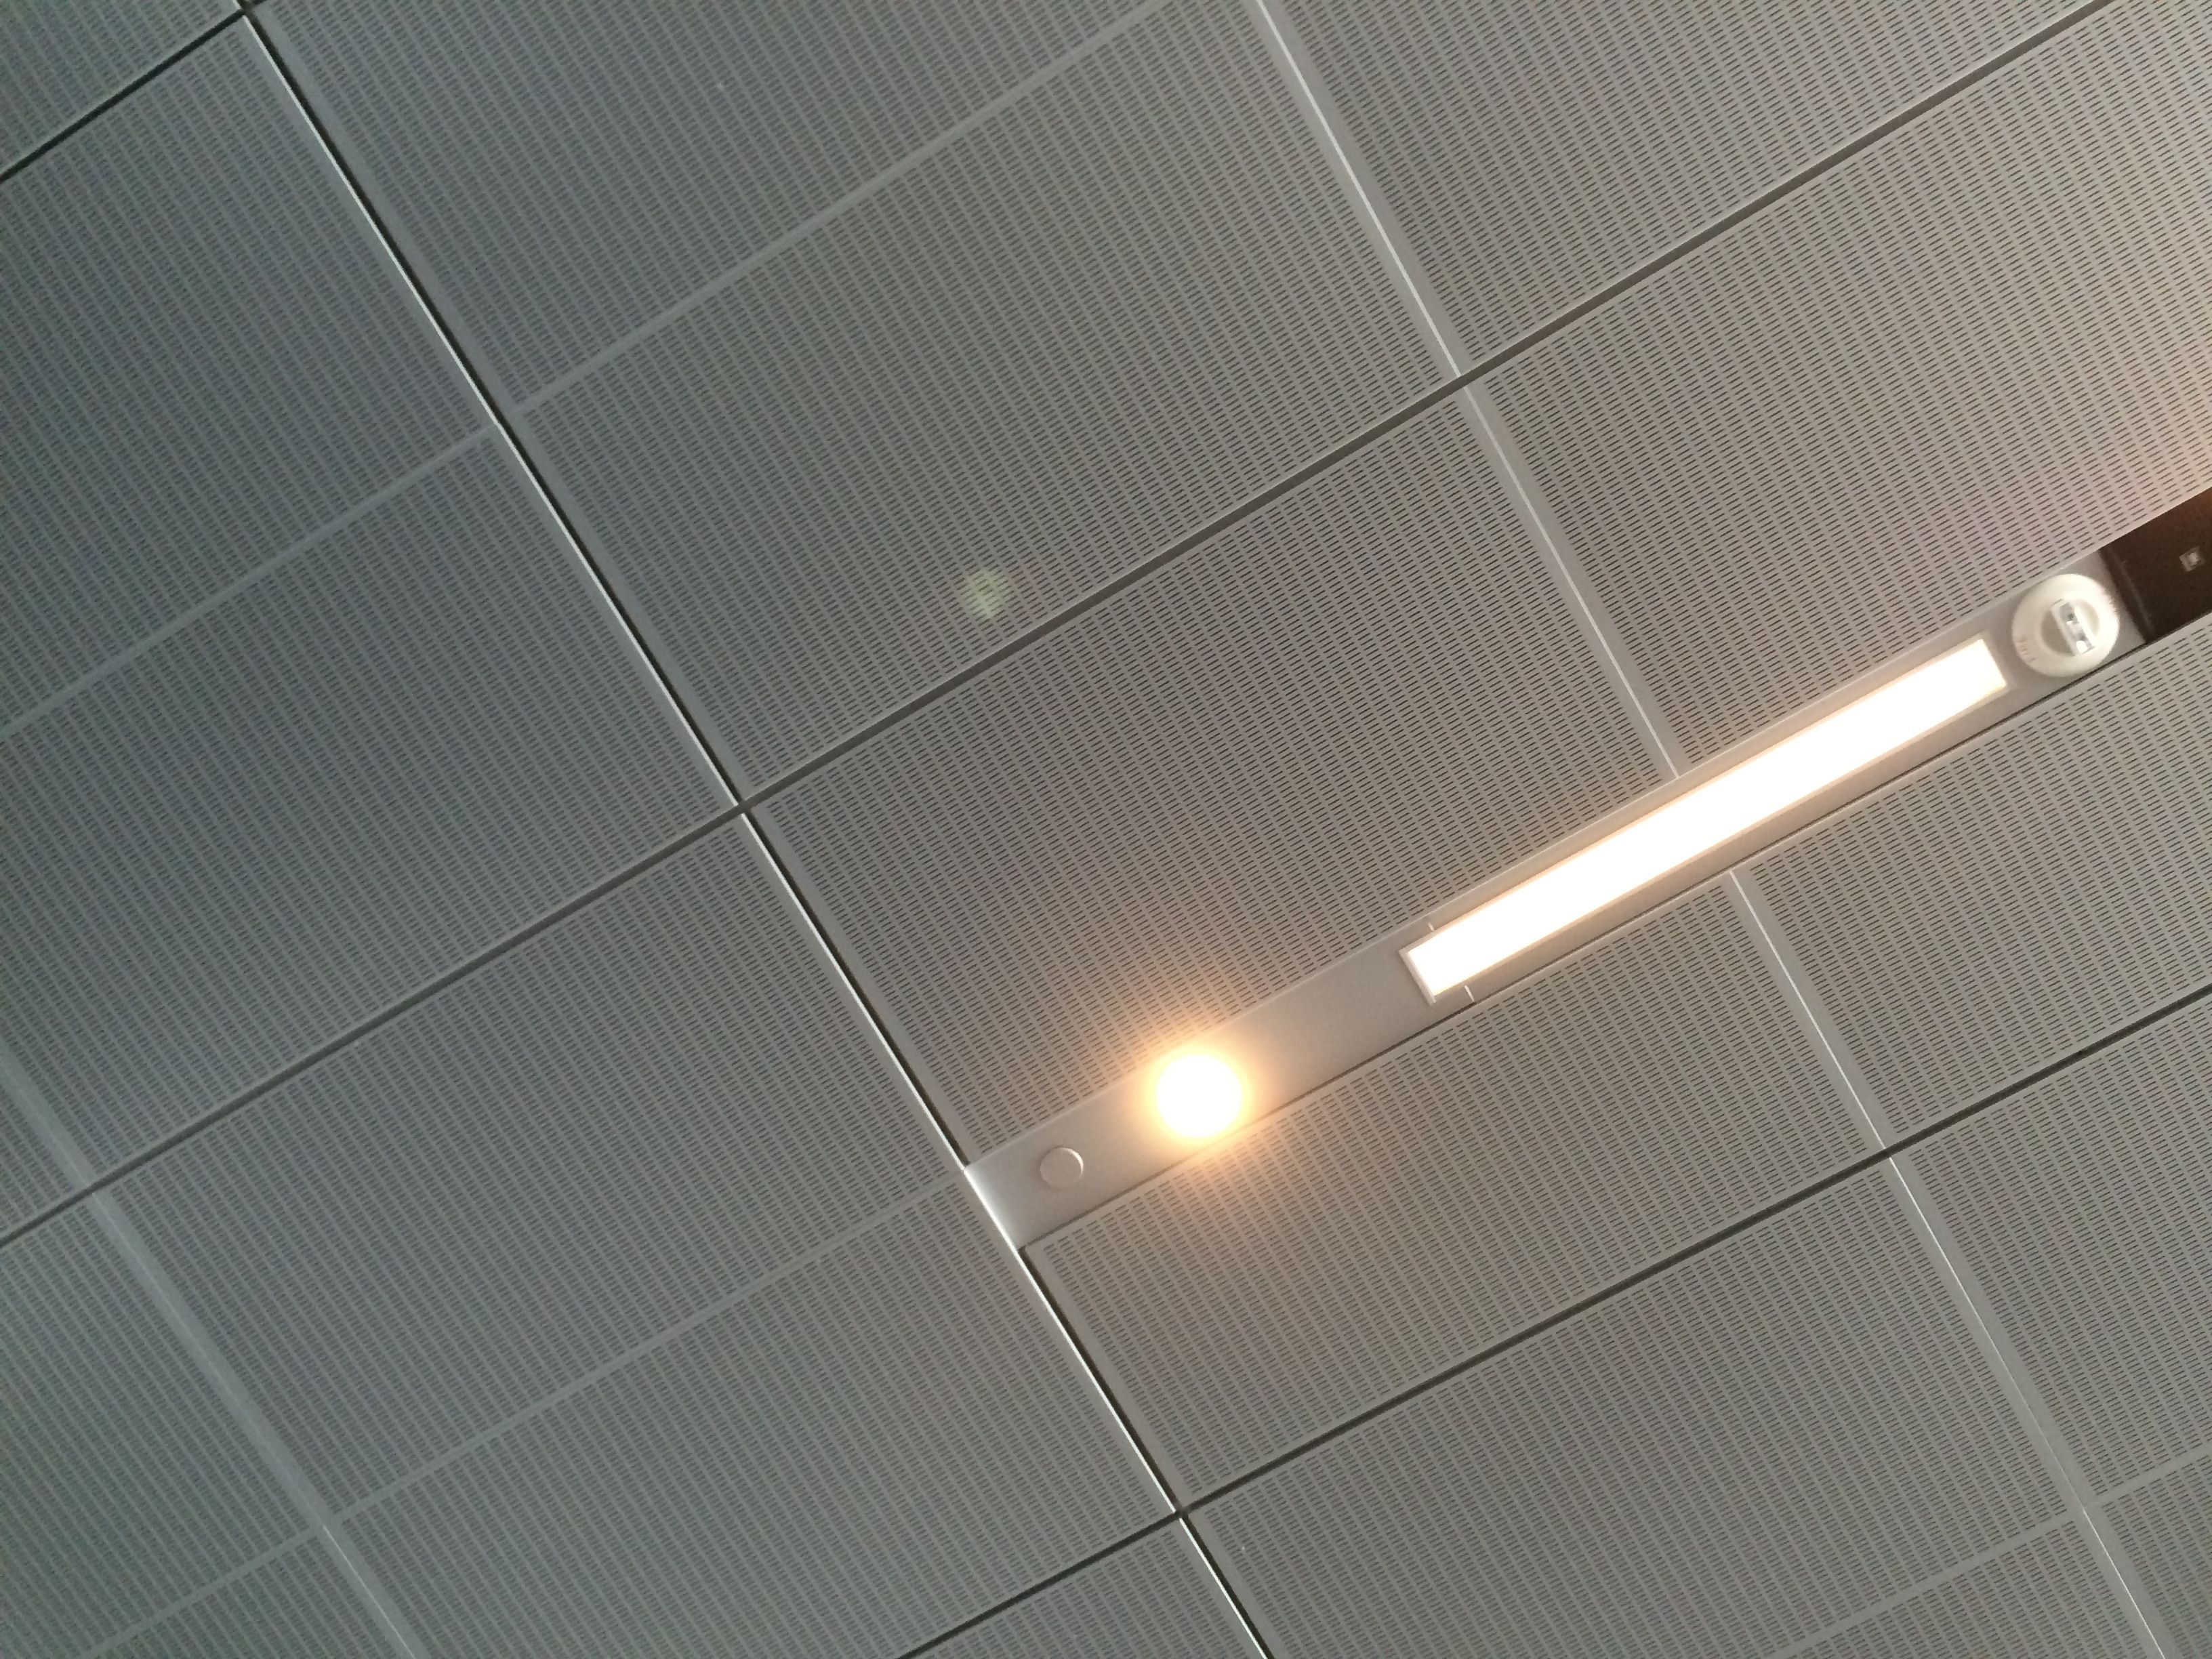 Nuskin perforated ceiling tiles corporate ceilings pinterest nuskin perforated ceiling tiles dailygadgetfo Choice Image